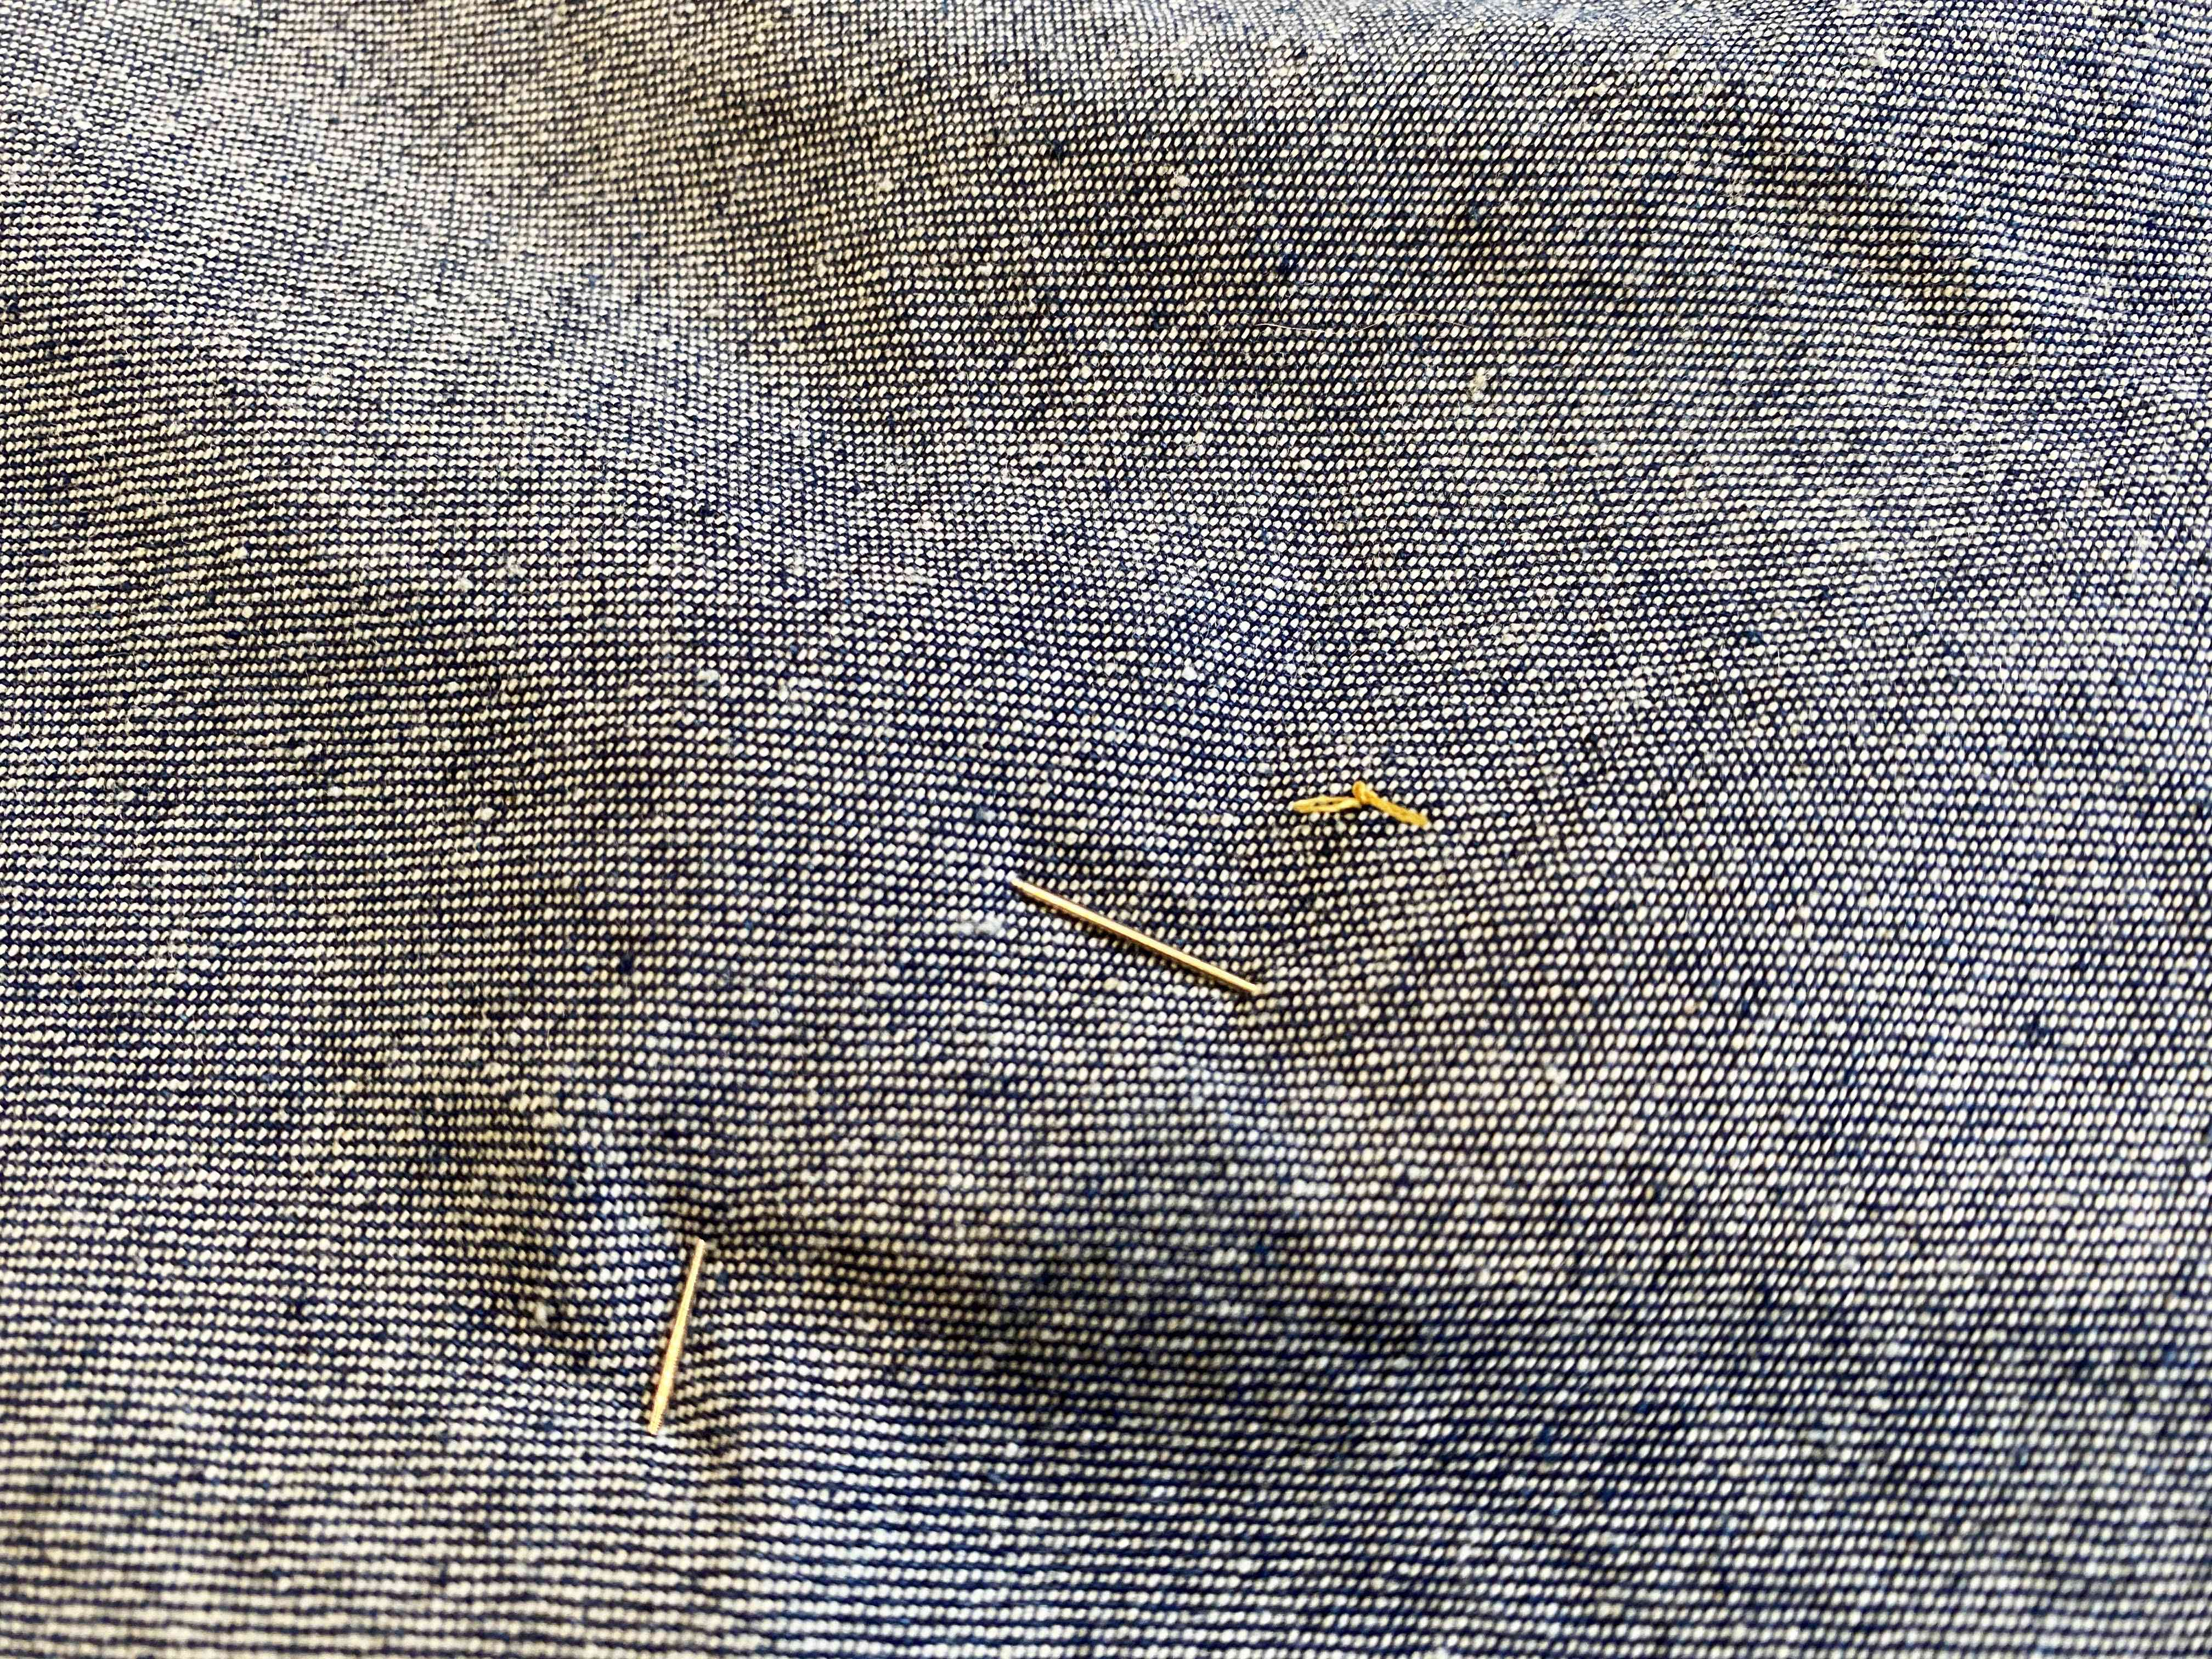 A knot in the back of denim